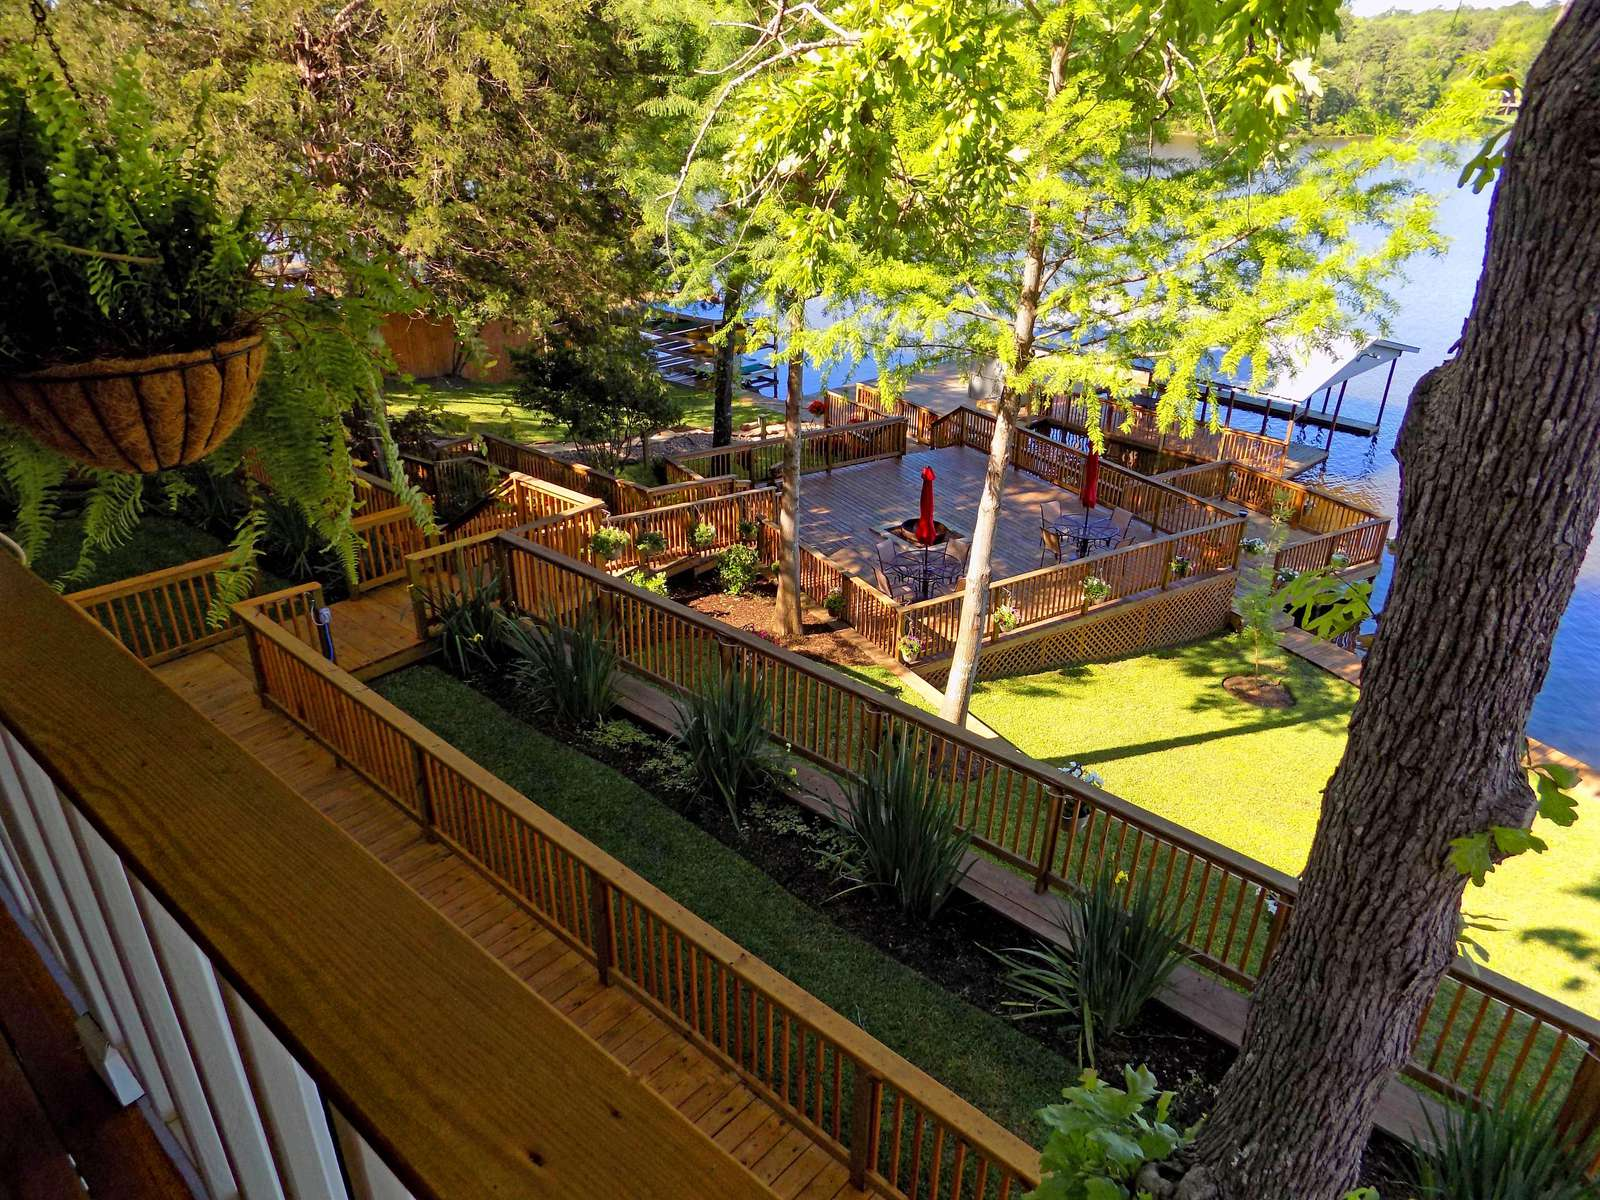 The view off the wrap around deck towards the lake.